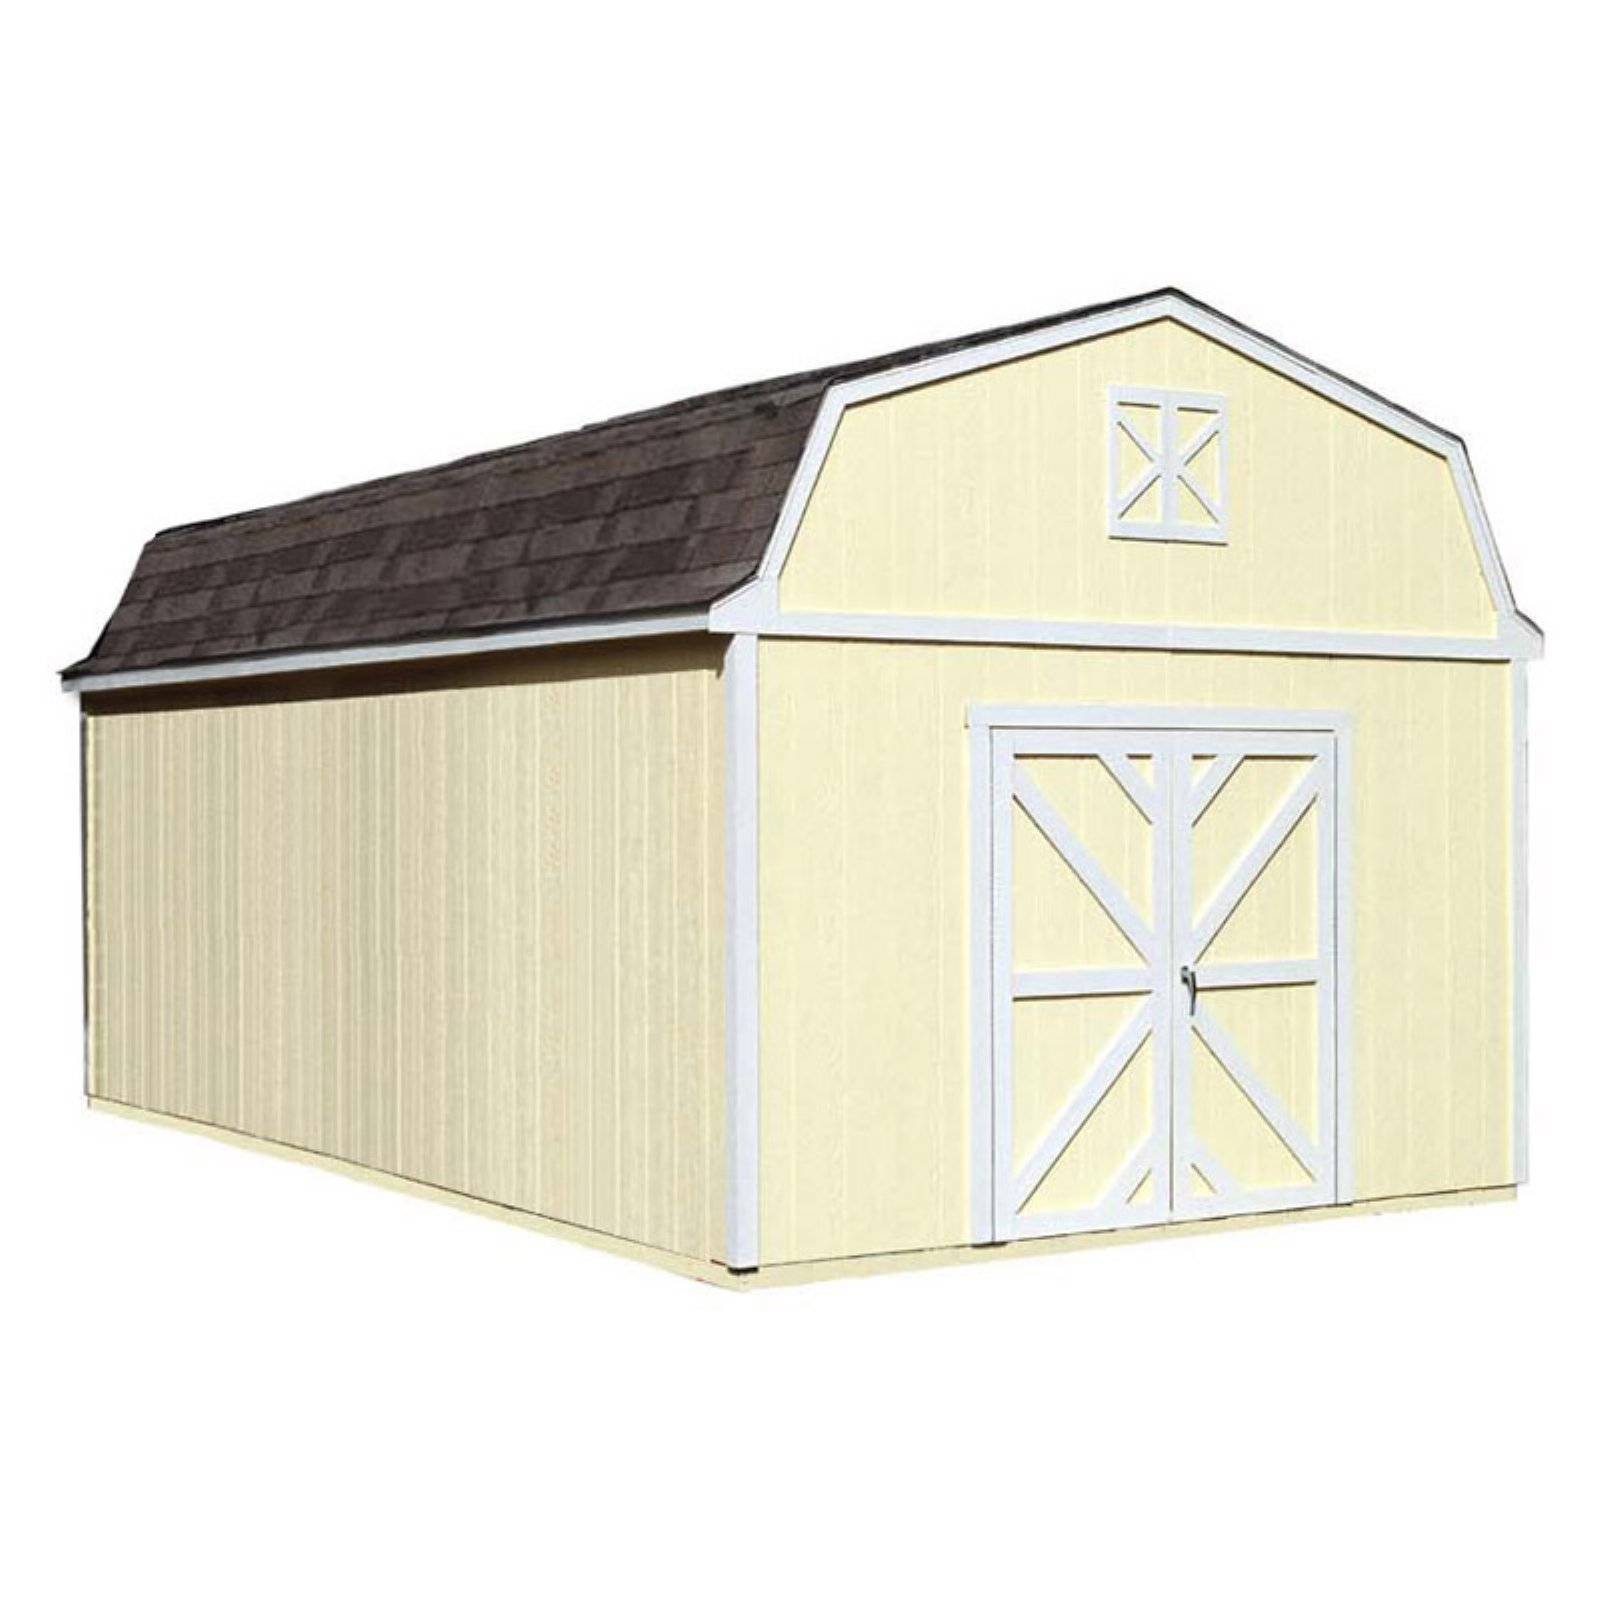 Handy Home Sequoia Storage Shed - 12 x 24 ft.